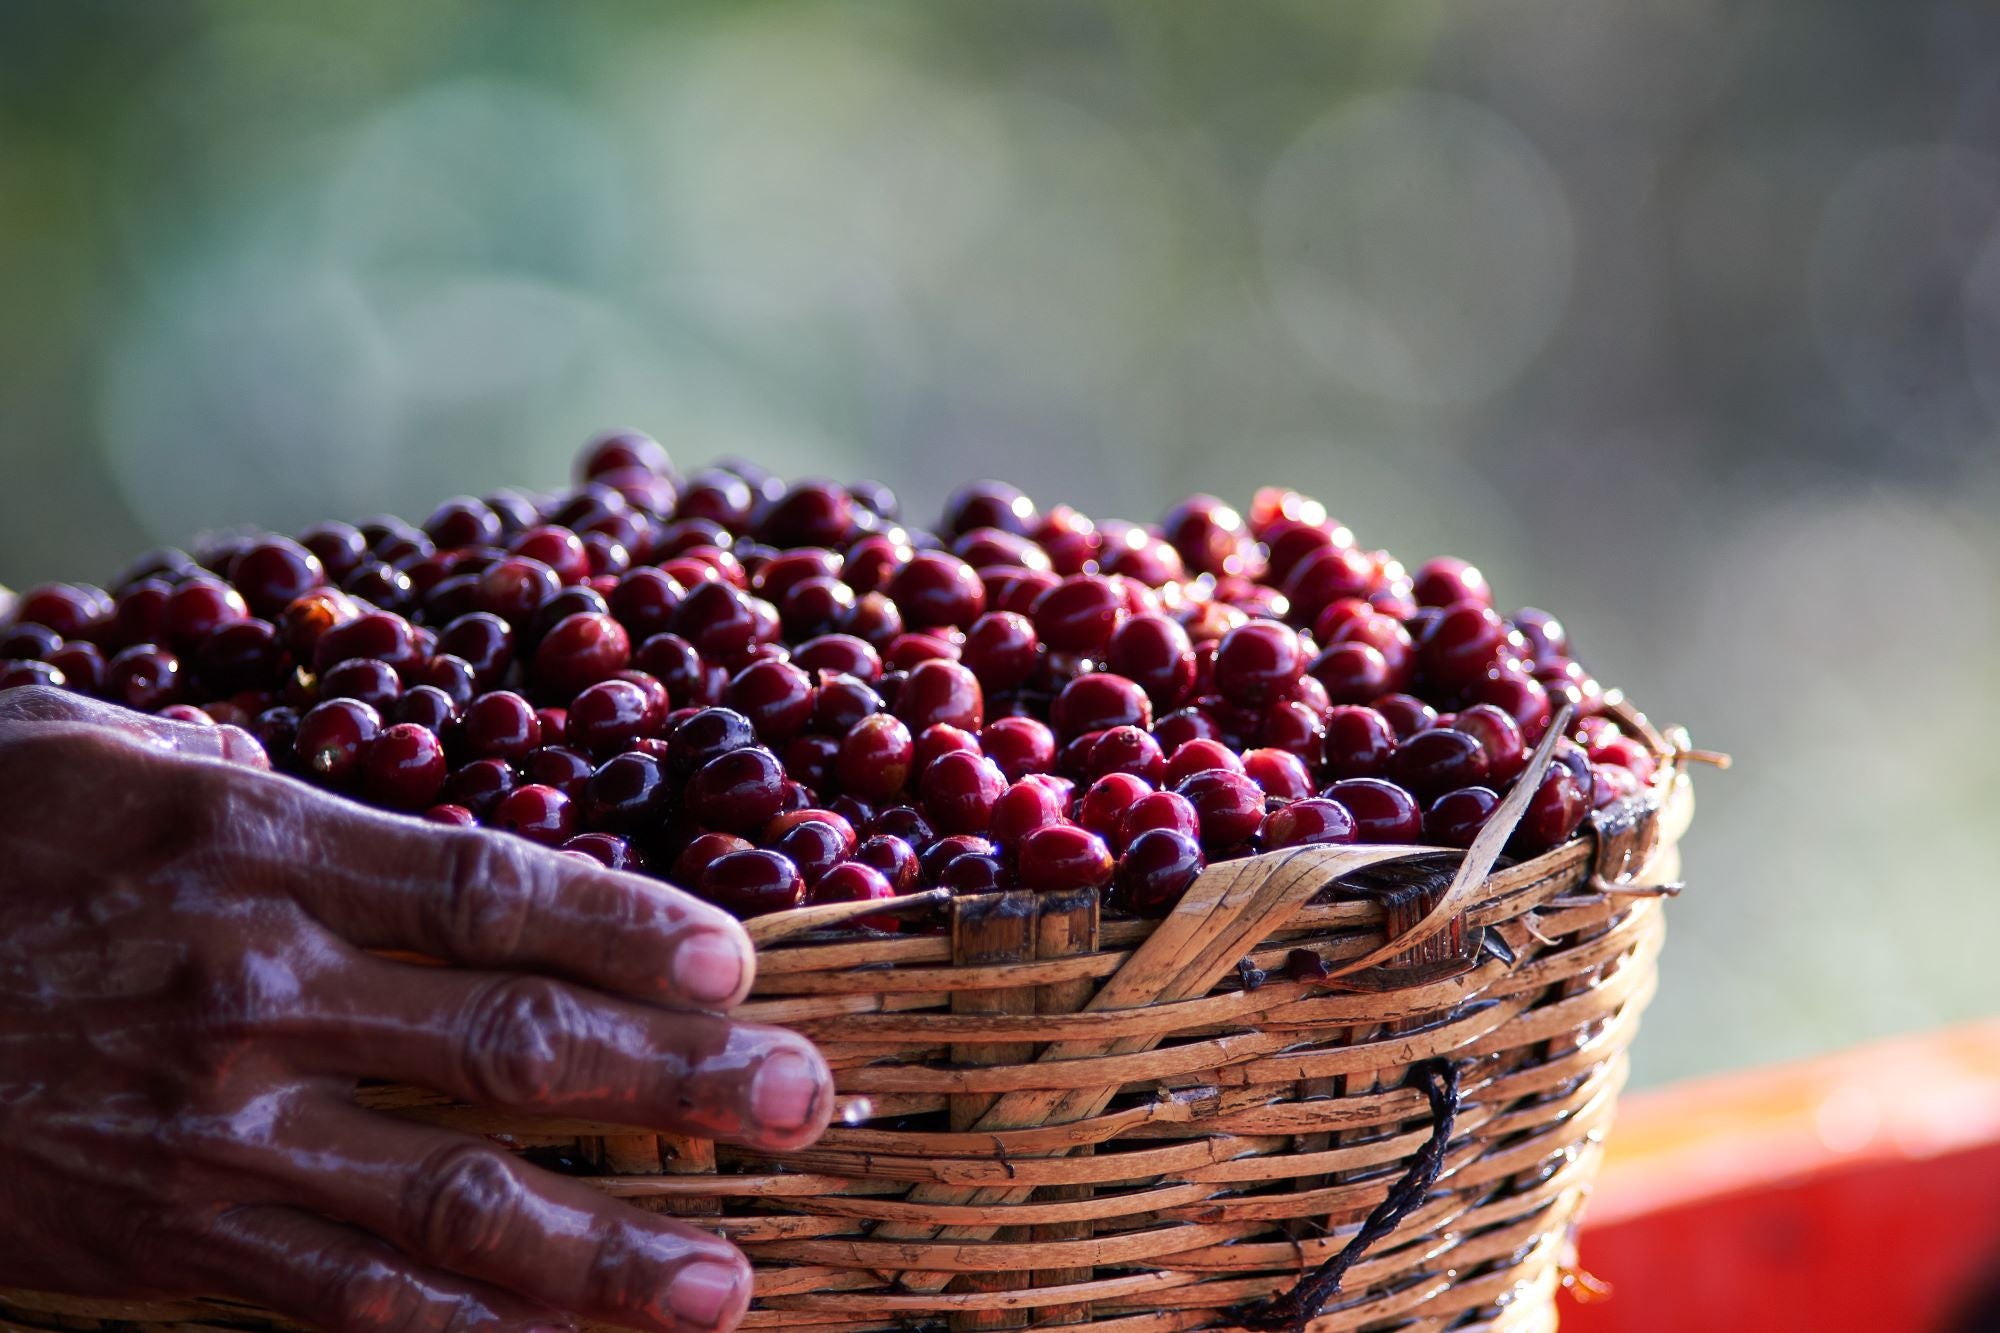 coffee cherries in basket, hand holding basket, close up